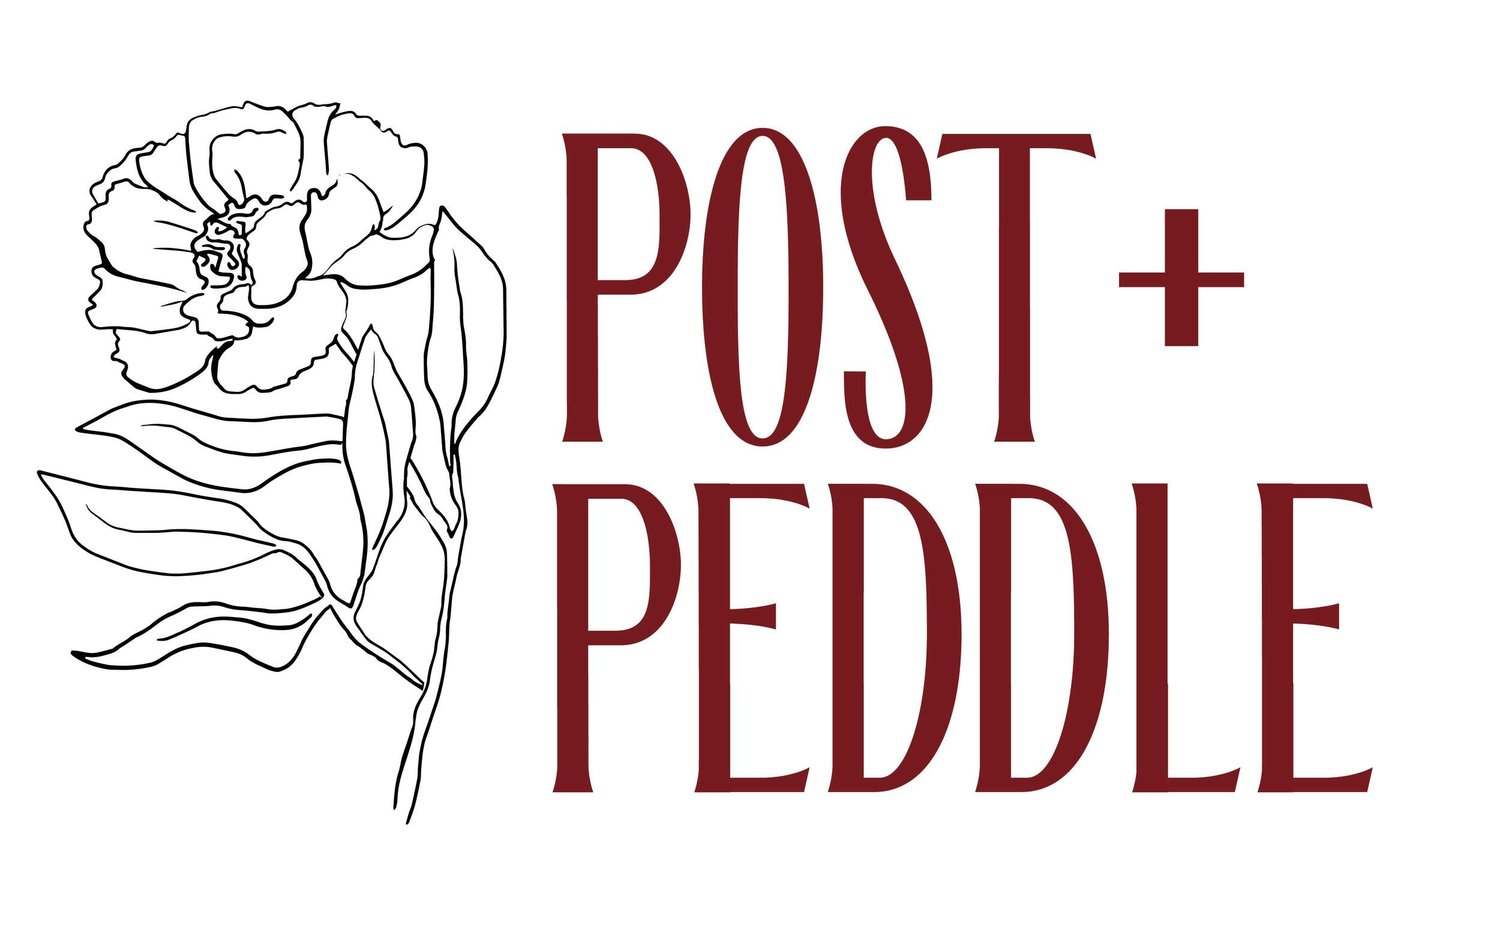 POST + PEDDLE